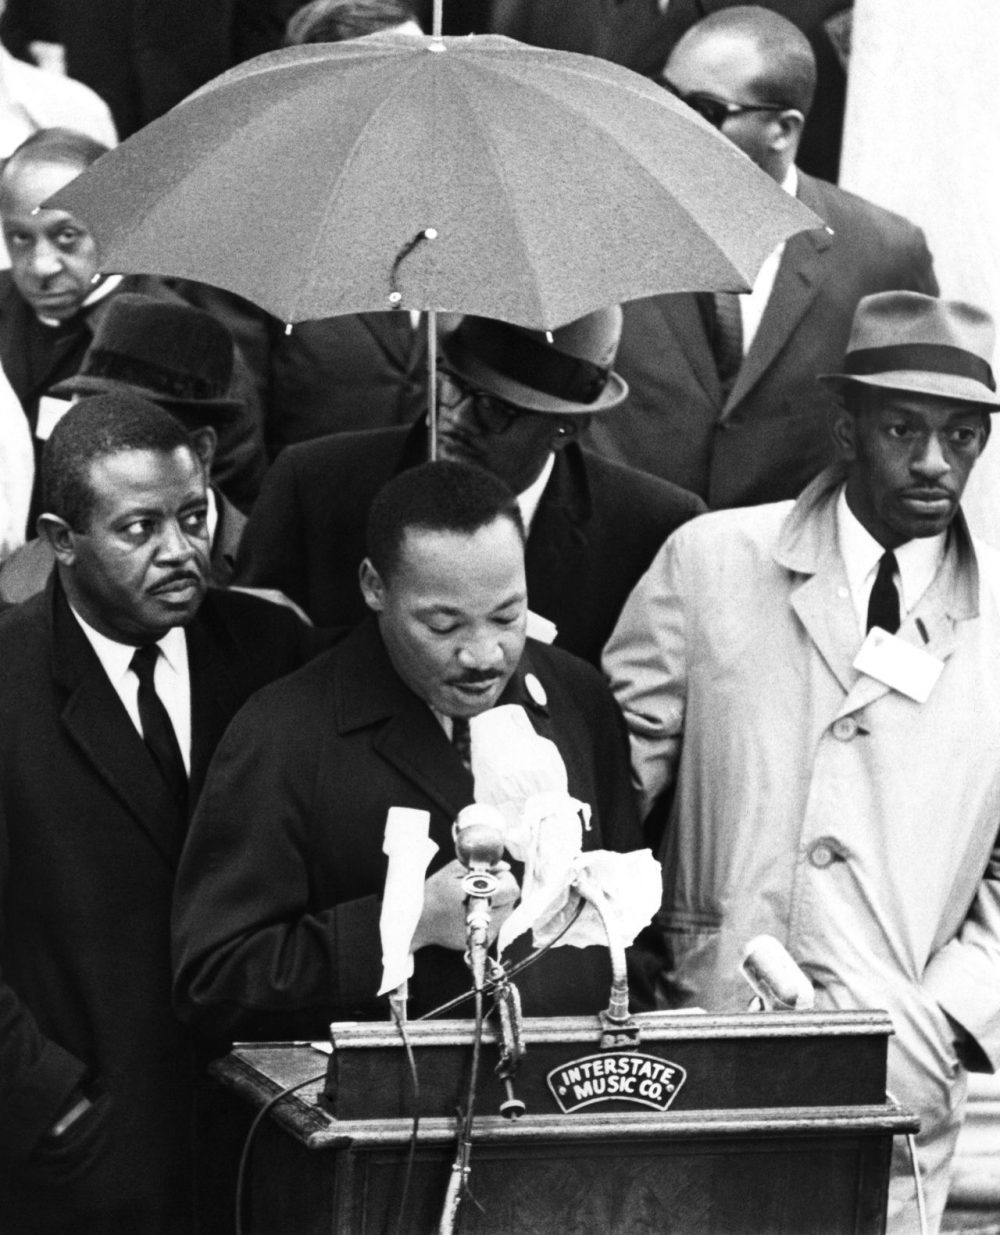 Dr. Martin Luther King Jr., protected by umbrella from rain, speaks to crowd on historic Boston Common, April 23, 1965. King led a civil rights march from the Roxbury section to the Common. He came to Boston, to lead the demonstration to protest segregation in schools, jobs and housing. (AP)